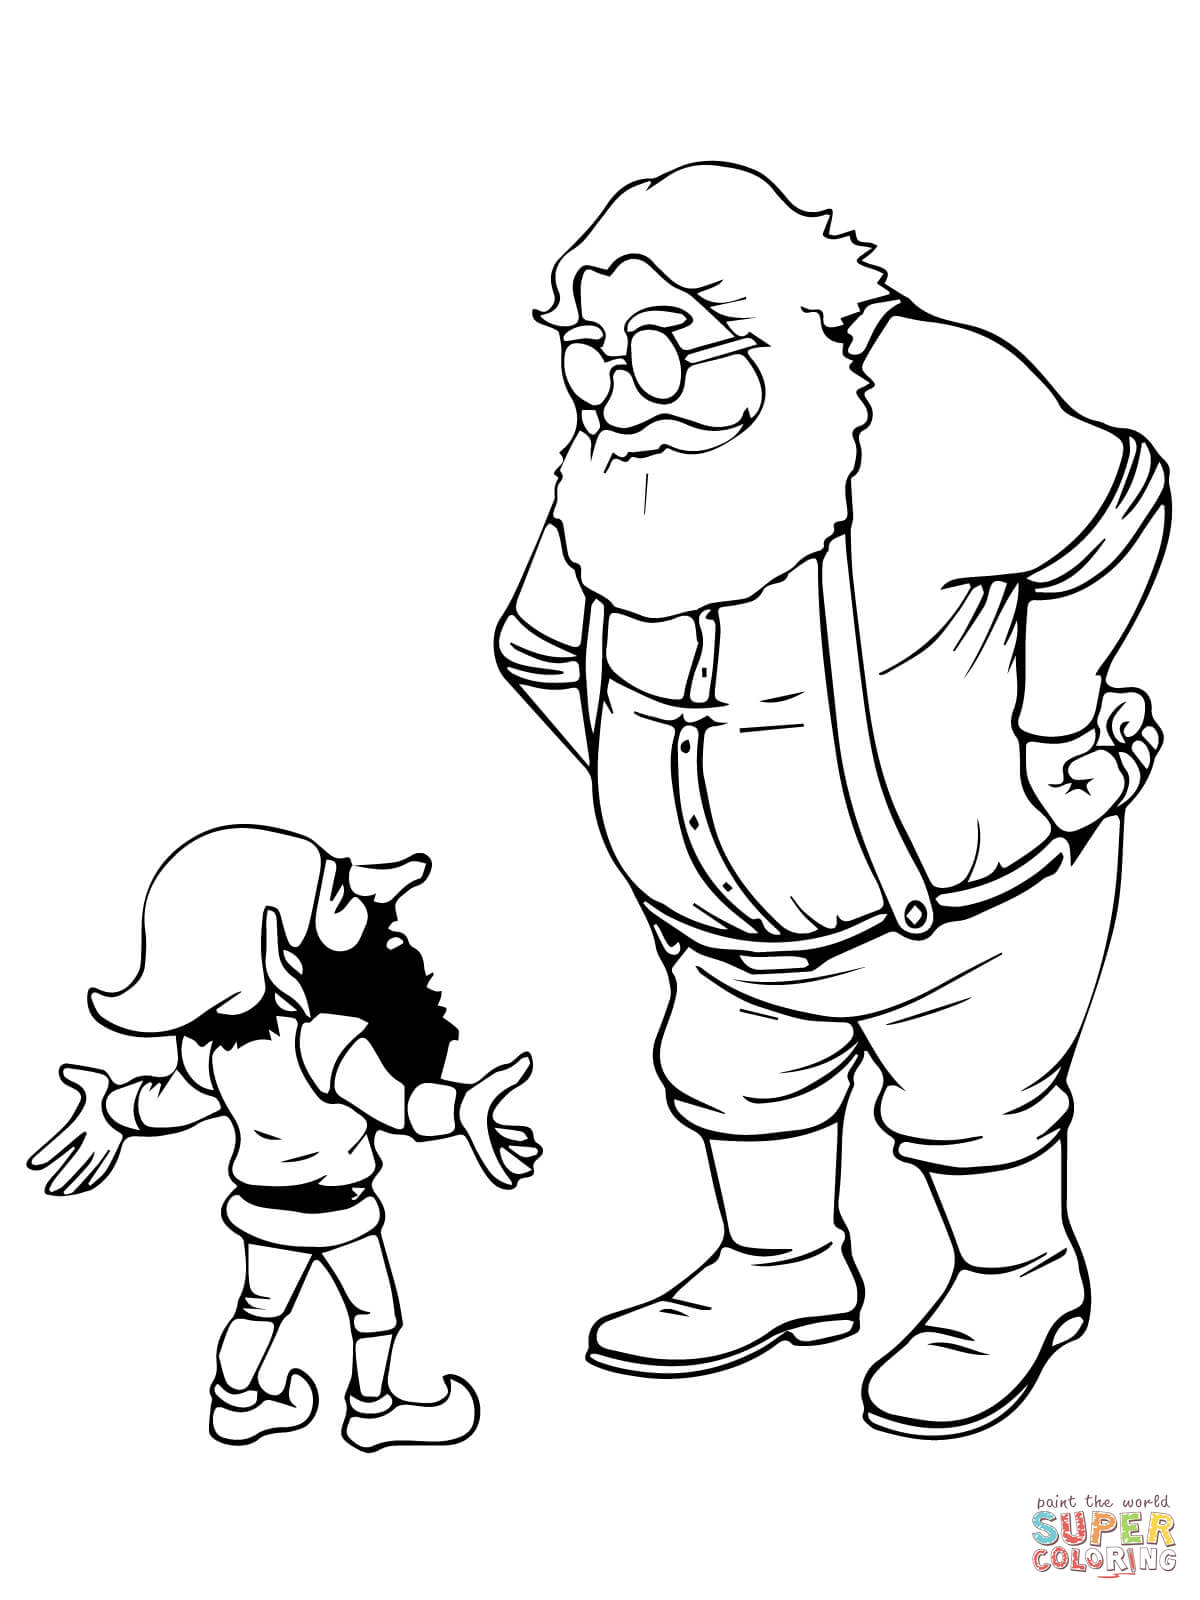 arthur christmas coloring pages arthur christmas coloring pages coloring home arthur christmas coloring pages